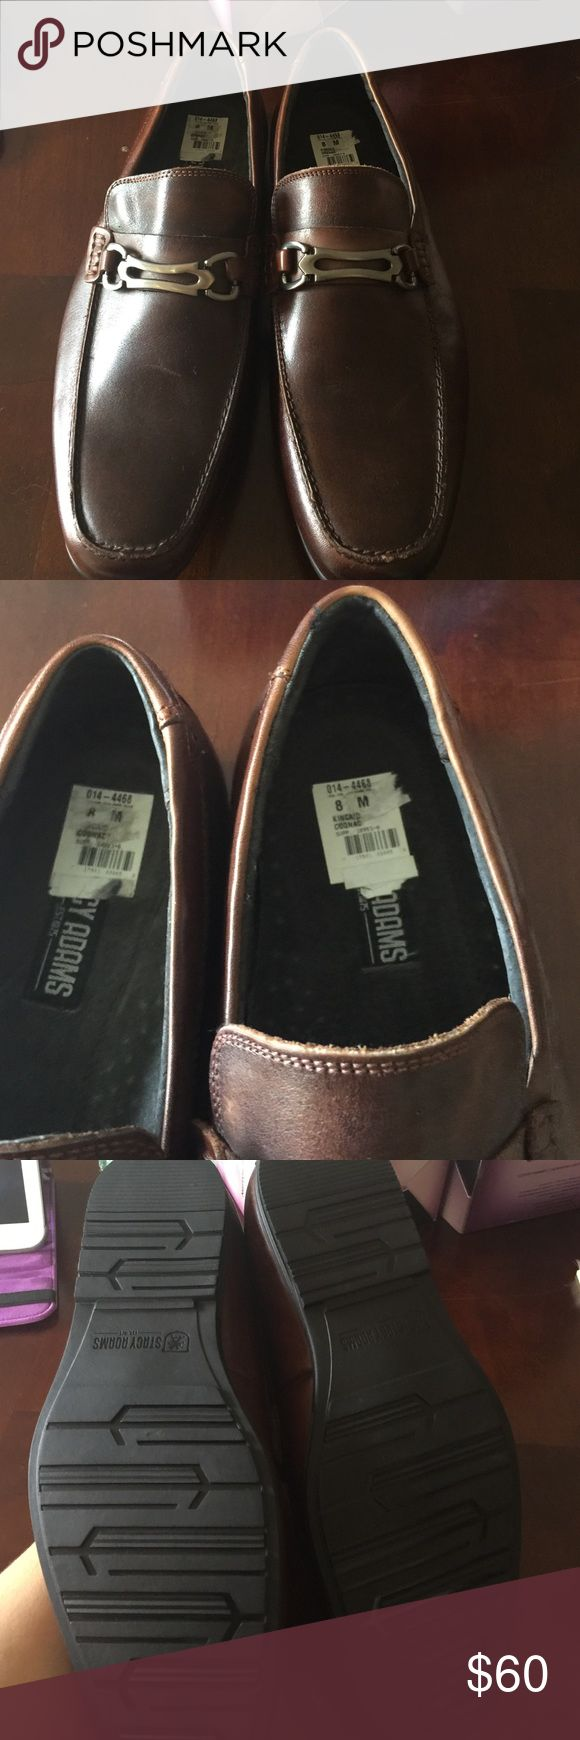 Stacy Adams men's shoes  brand new no box Stacy Adams  men's shoes brand new  not box cognac color  I bought them for my husband. But  he never used them Stacy Adams Shoes Oxfords & Derbys